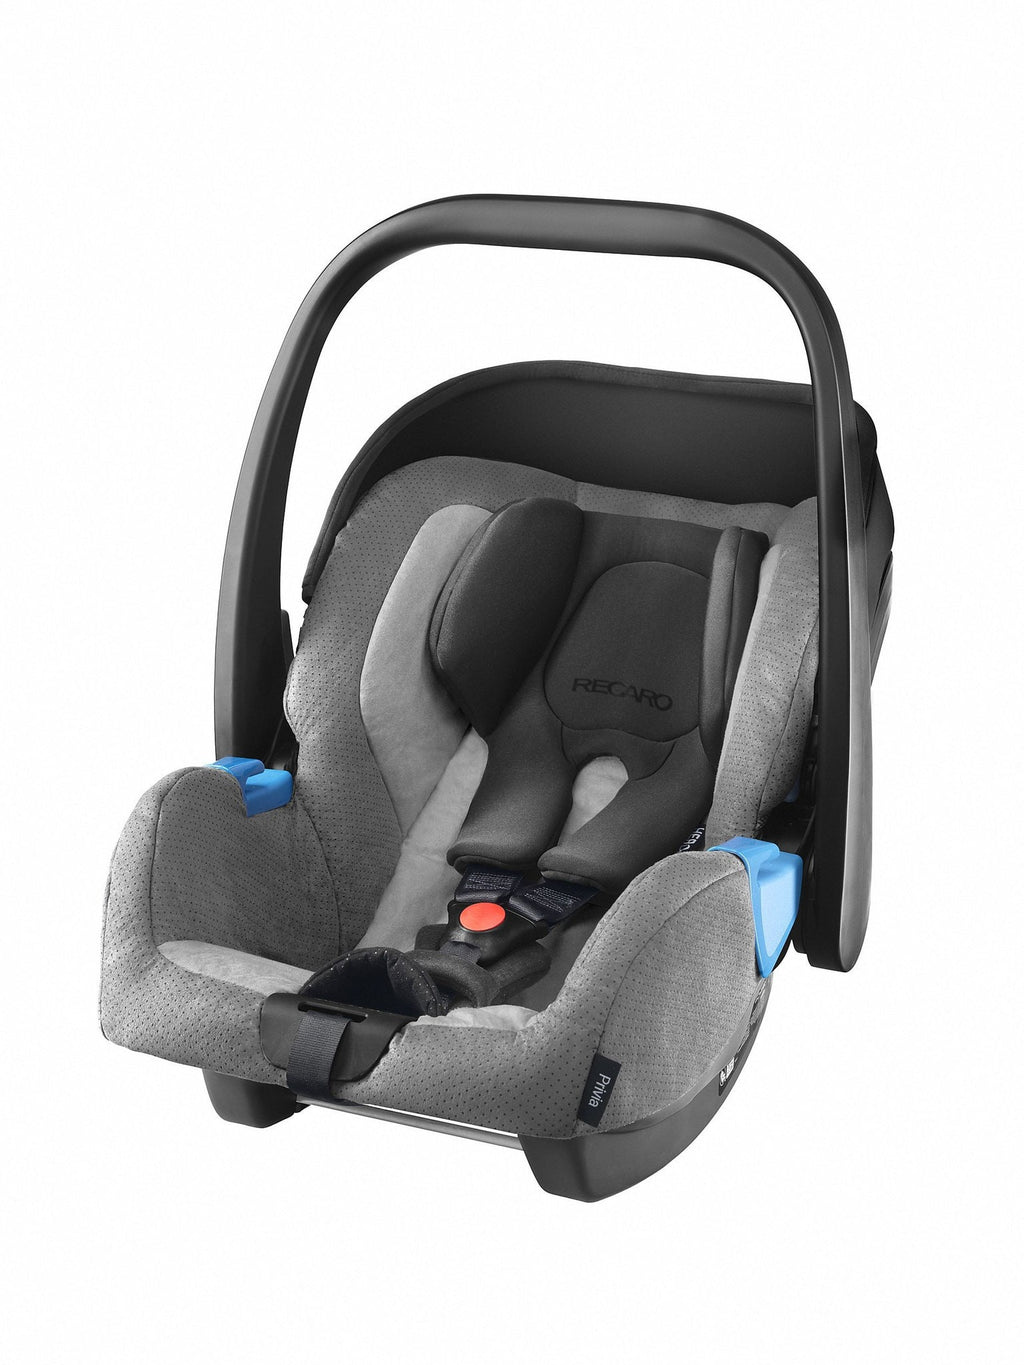 Recaro Privia With Isofix Base - Shadow